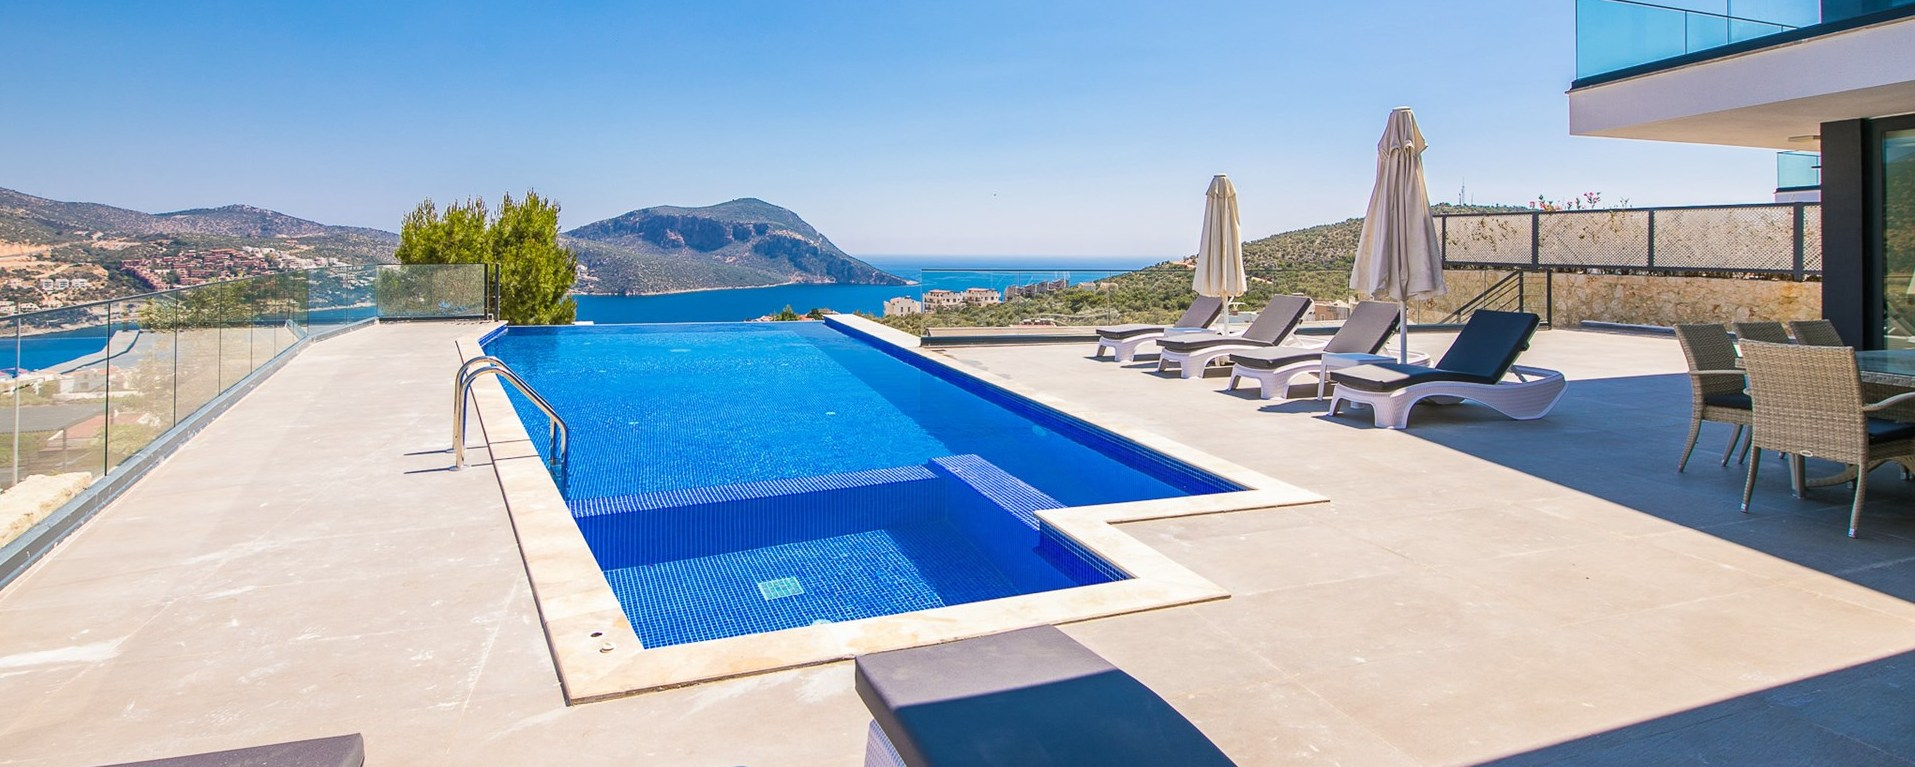 luxury-4-bedroom-villa-kalkan-pool